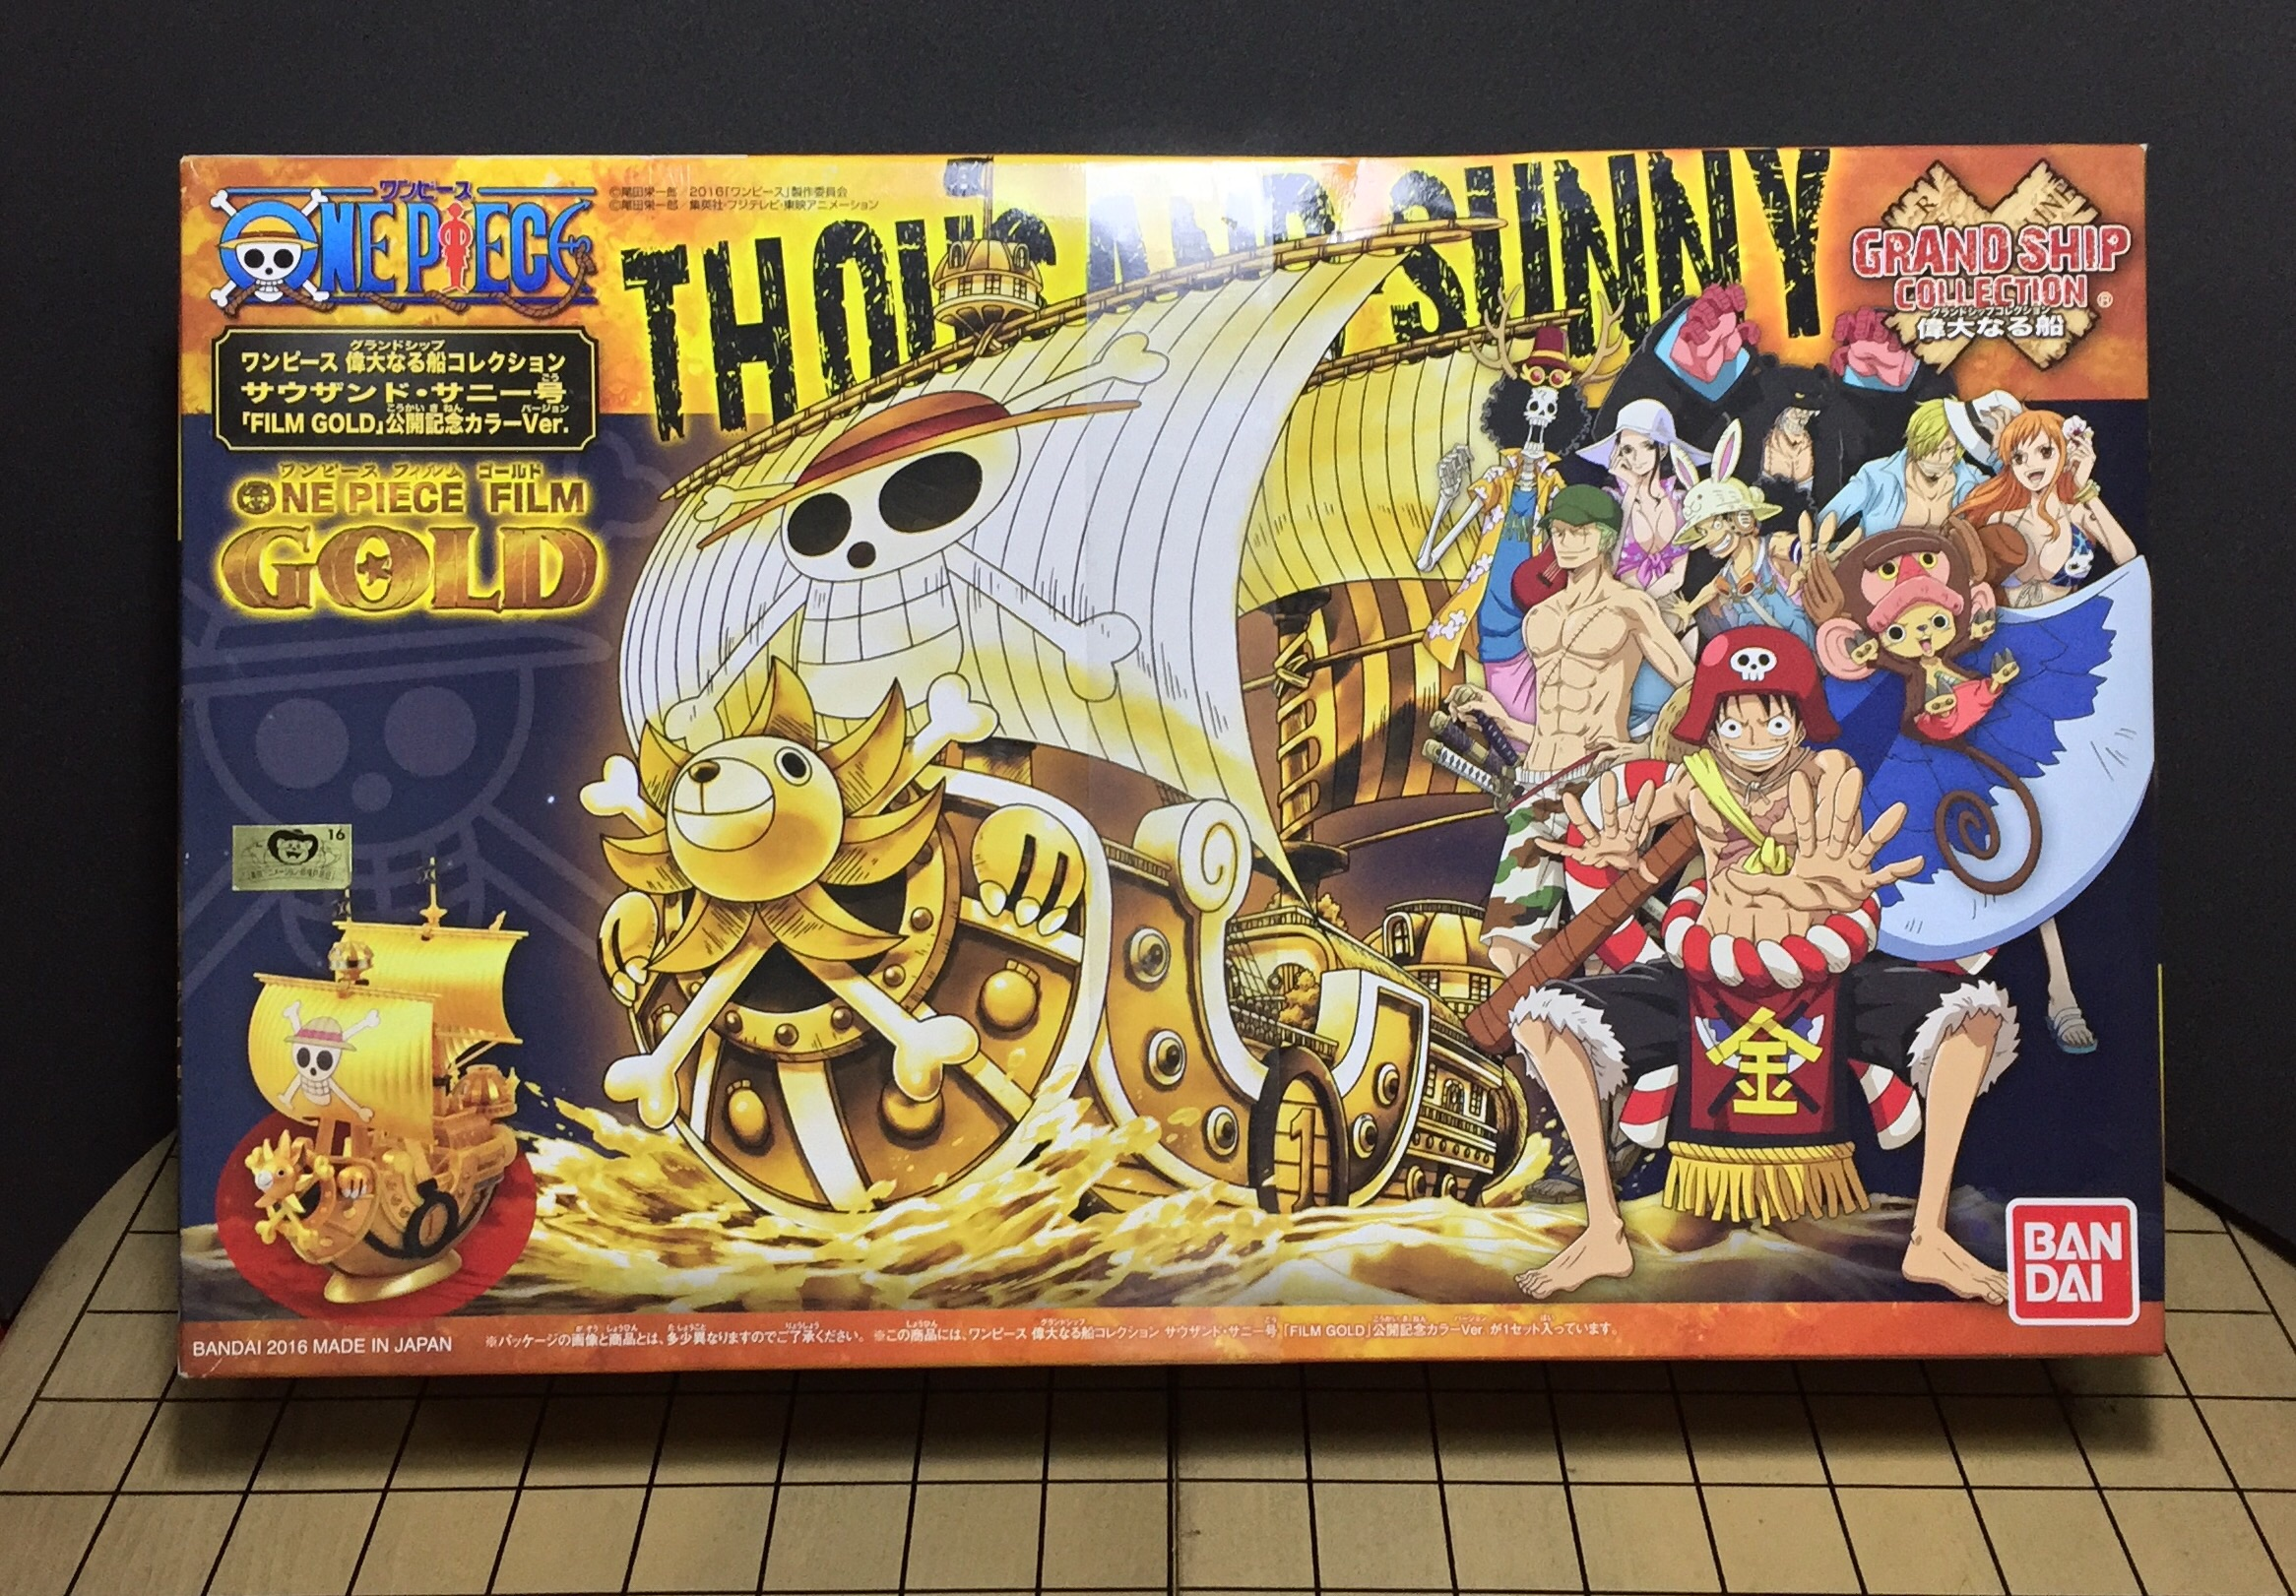 Thousand Sunny Grand Ship Collection One Piece Film Gold - Model Kit